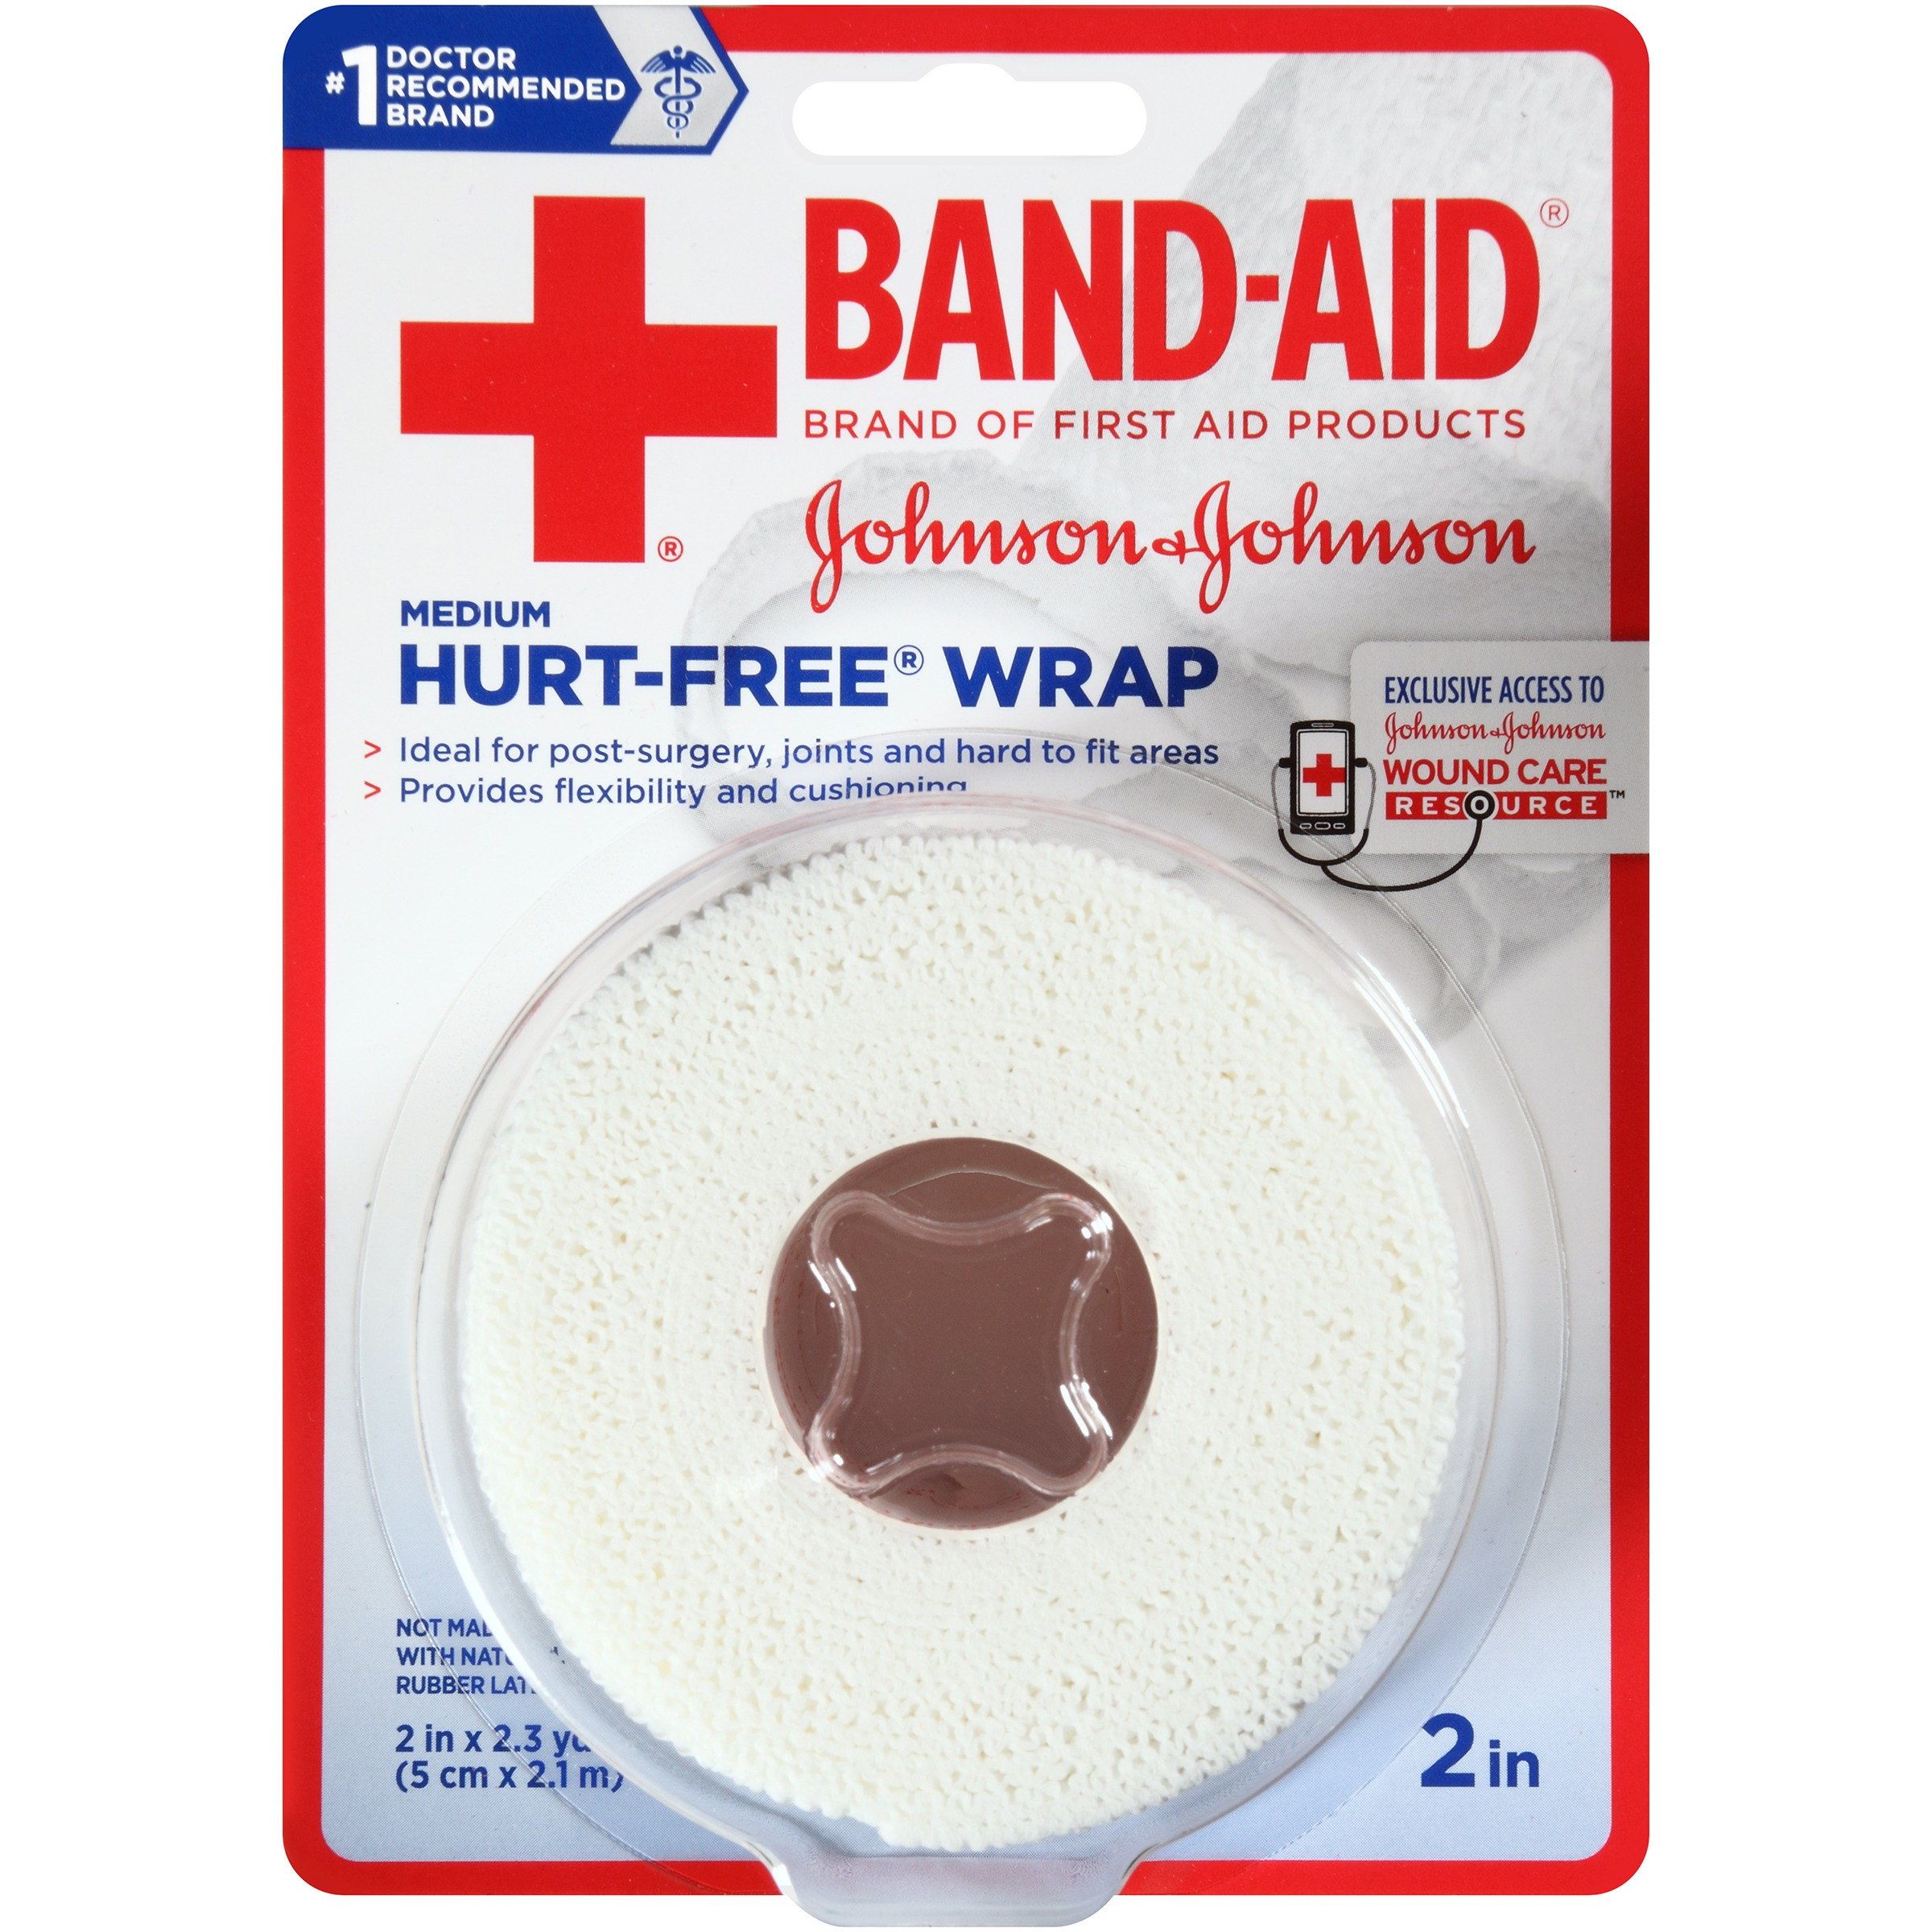 BAND-AID Brand of First Aid Products HURT-FREE Wrap for Securing Dressings On Post-Surgical Wounds, 2 Inches by 2.3 Yards by Johnson & Johnson